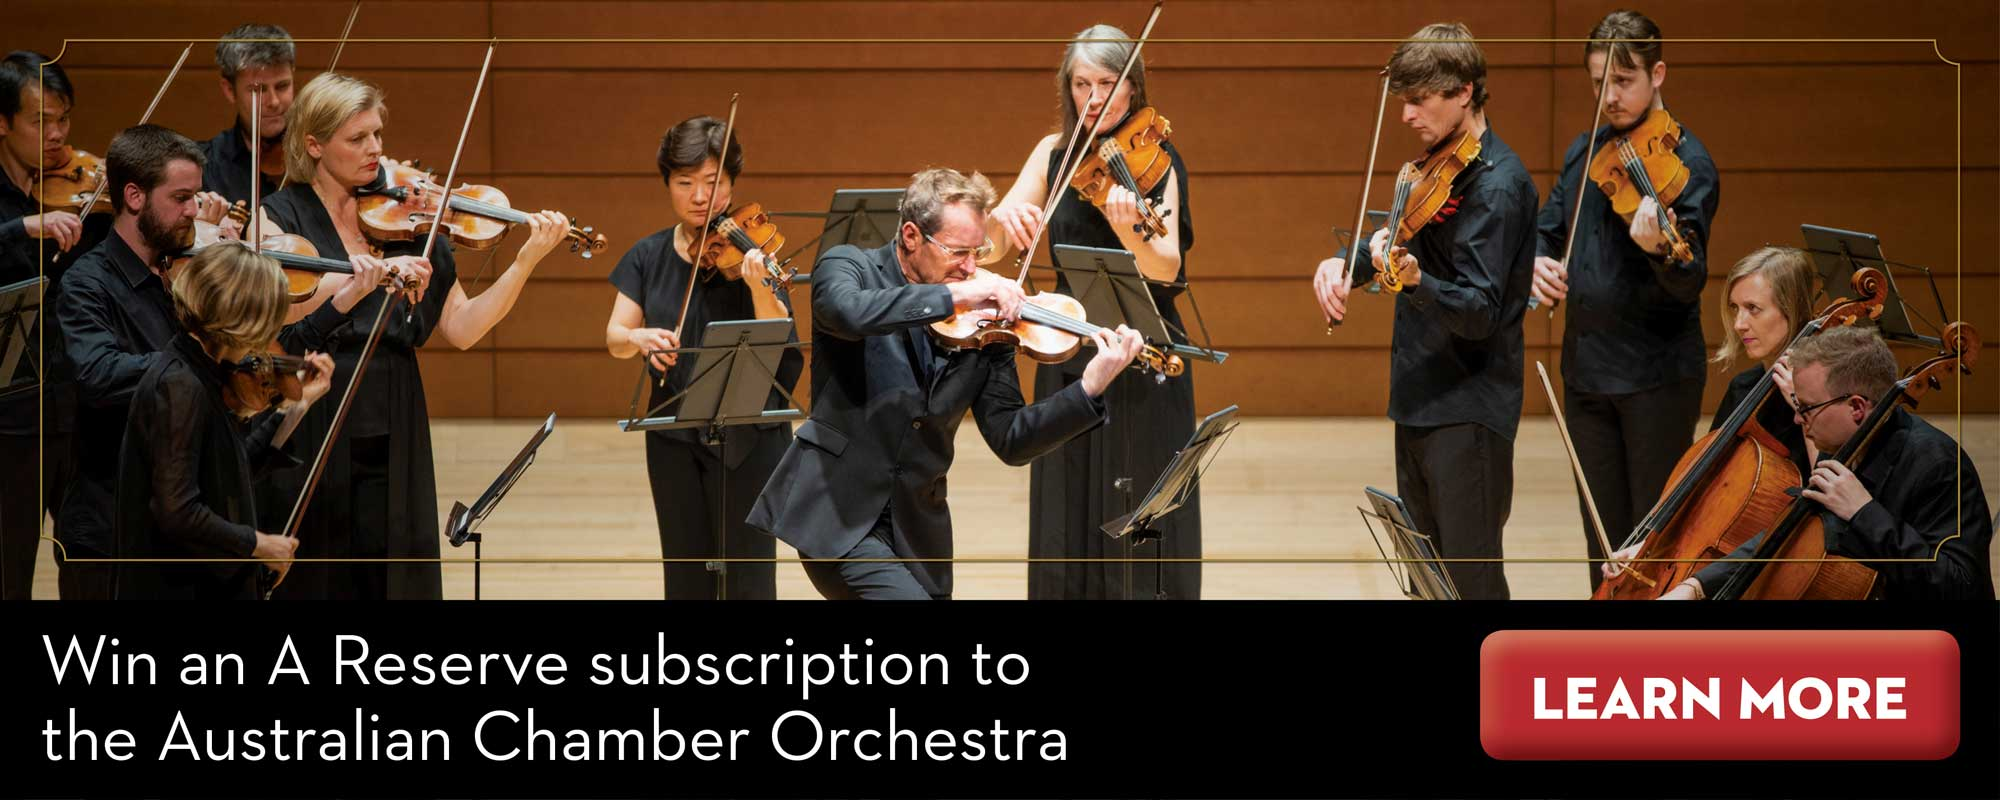 Subscribe to Limelight, Australia's Classical Music and Arts Magazine